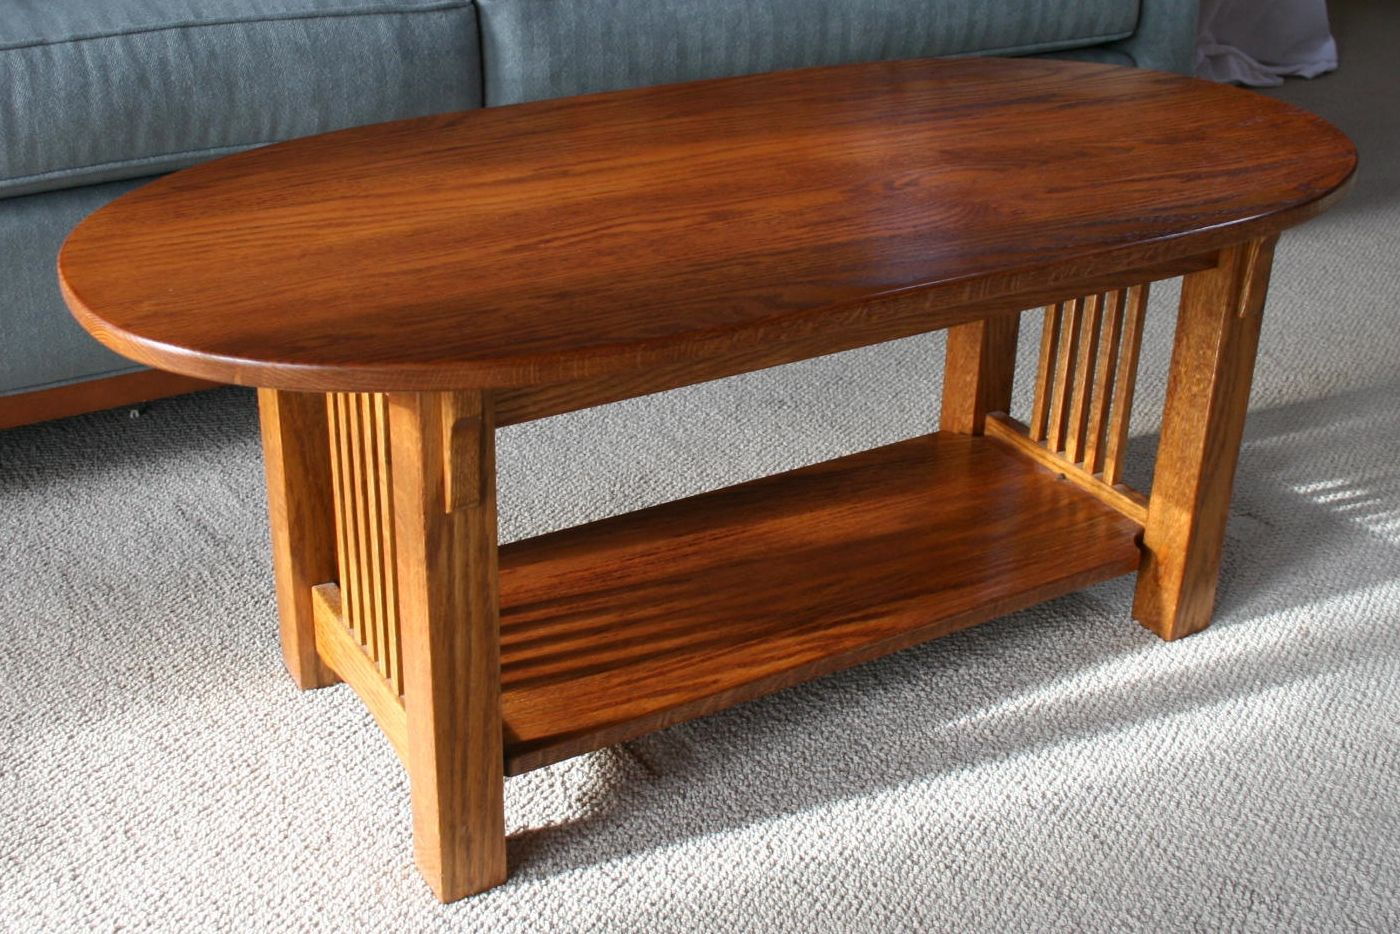 Handmade Mission Coffee Table By Living Forest Designs